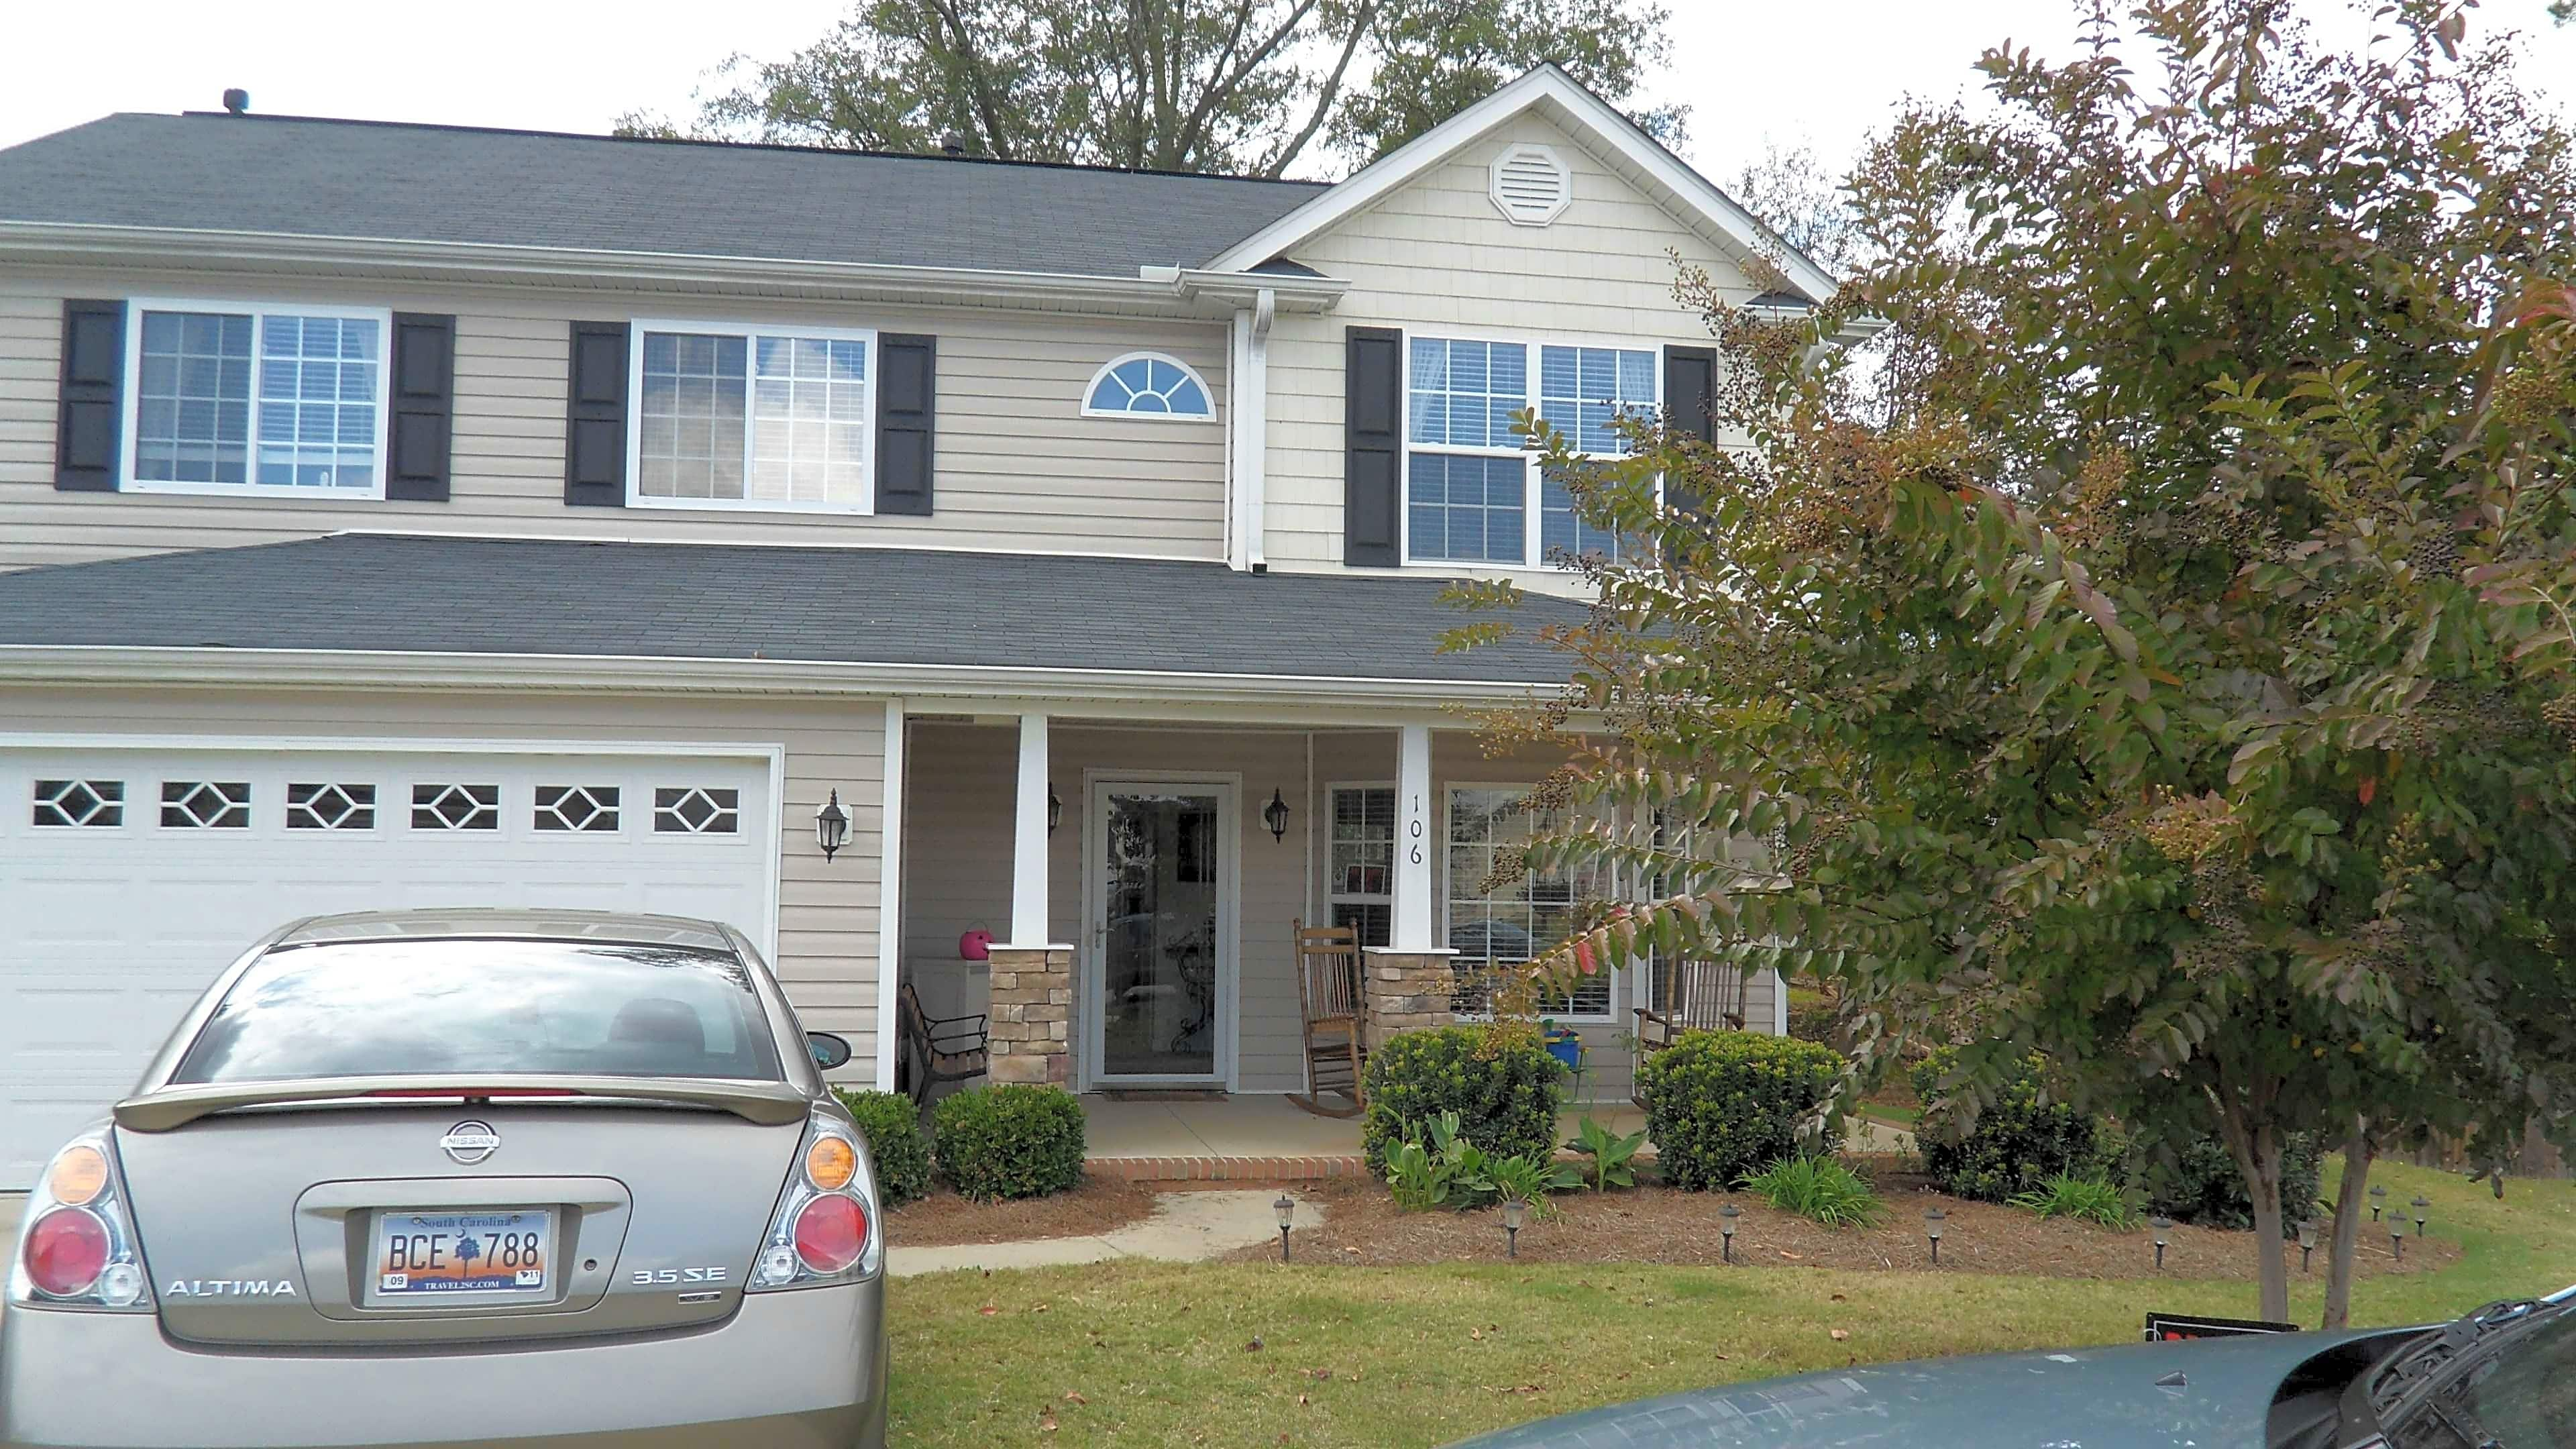 Spartanburg Houses For Rent In Spartanburg Homes For Rent